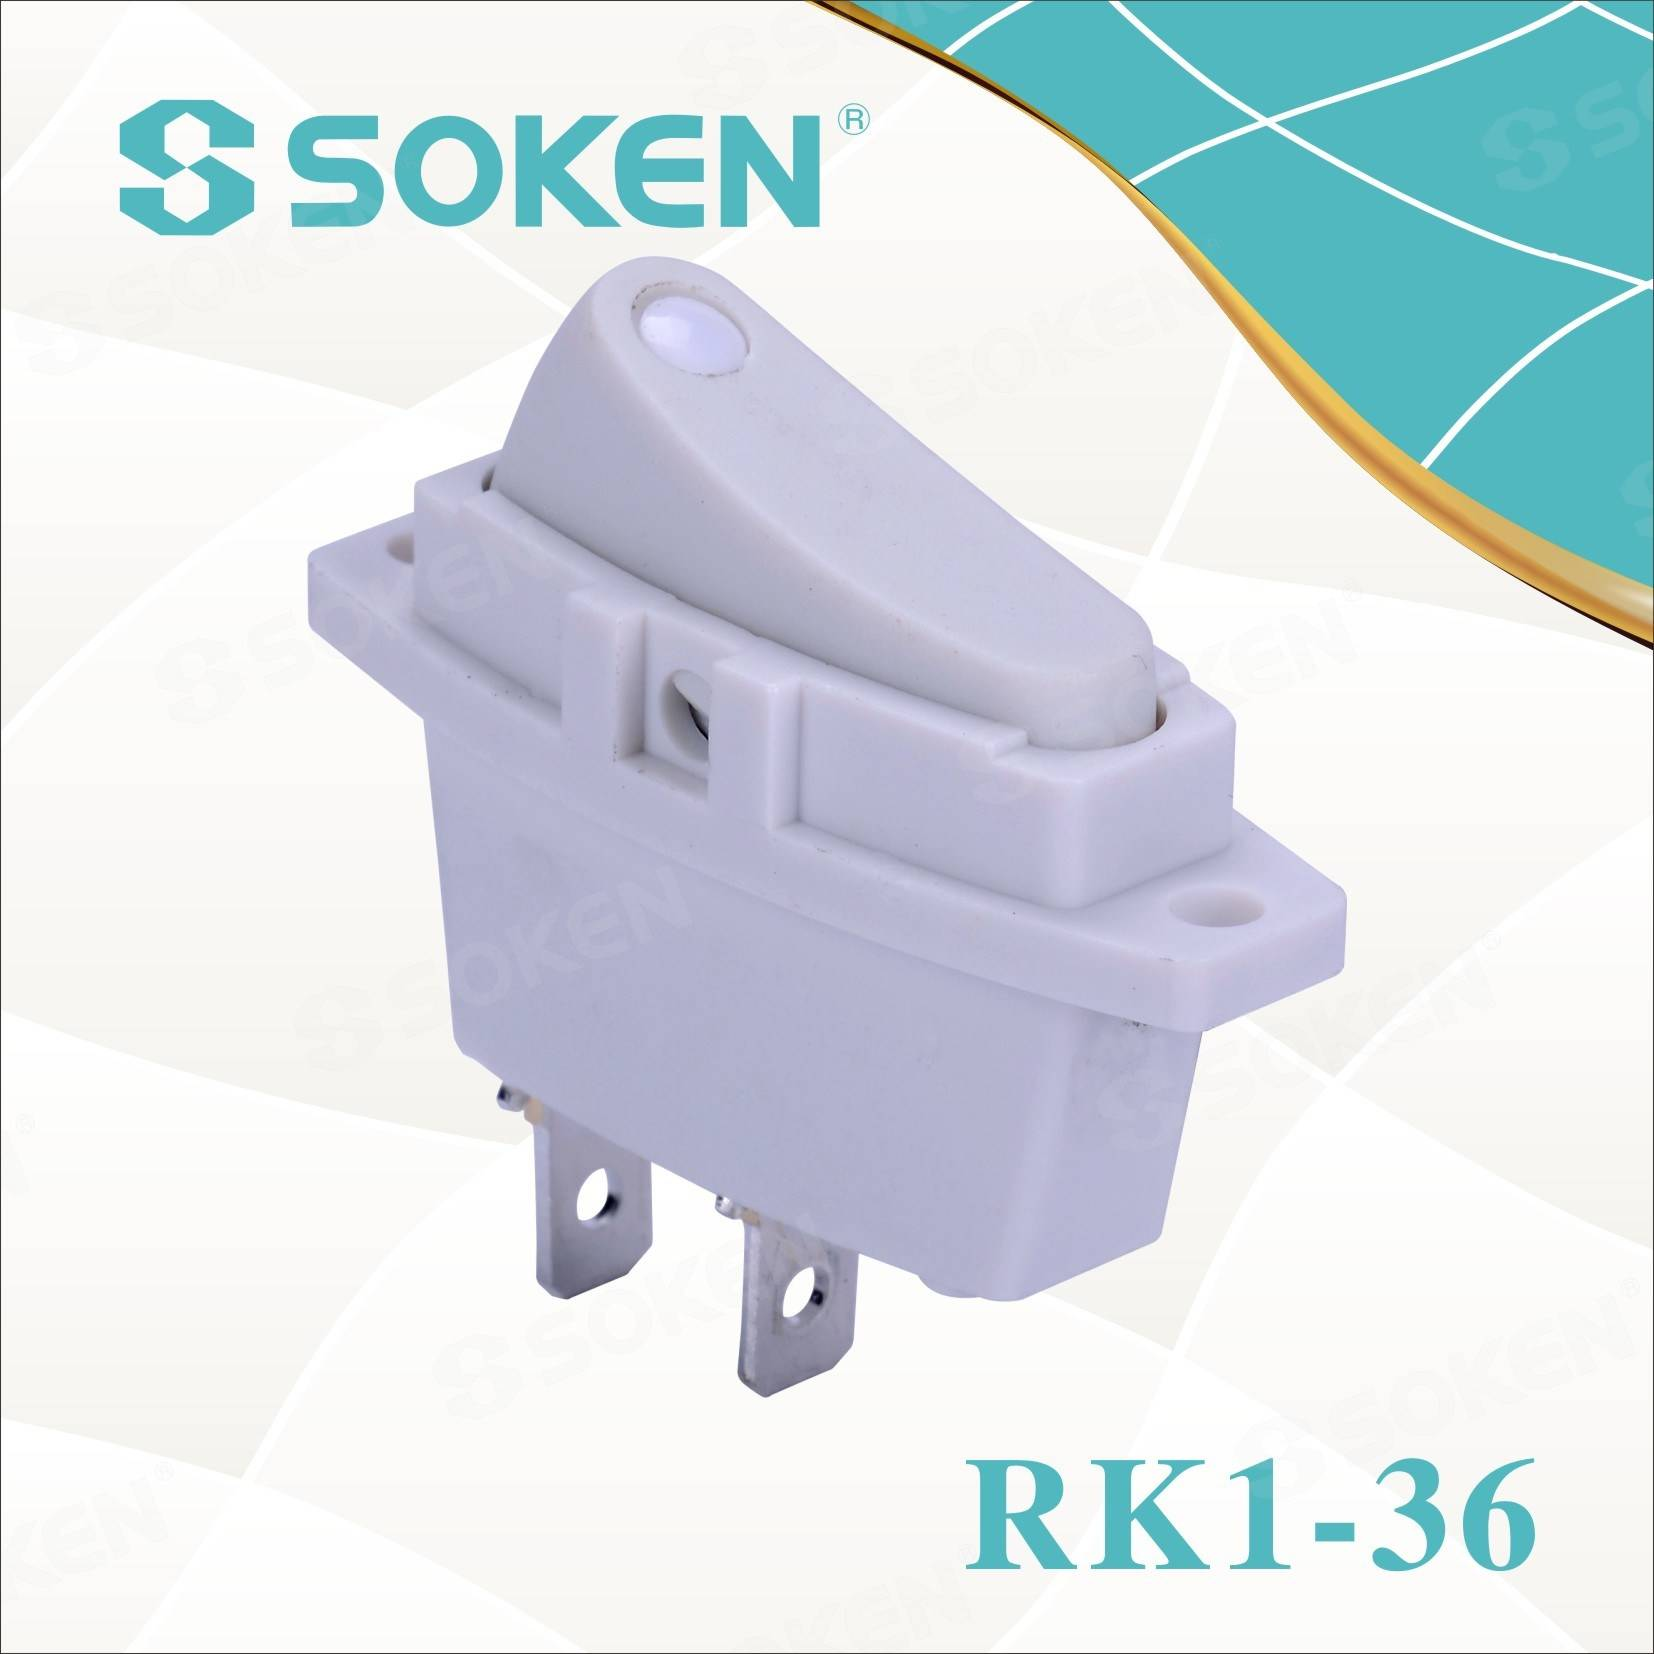 Soken Rk1-36 1X1 on off kango Pindah